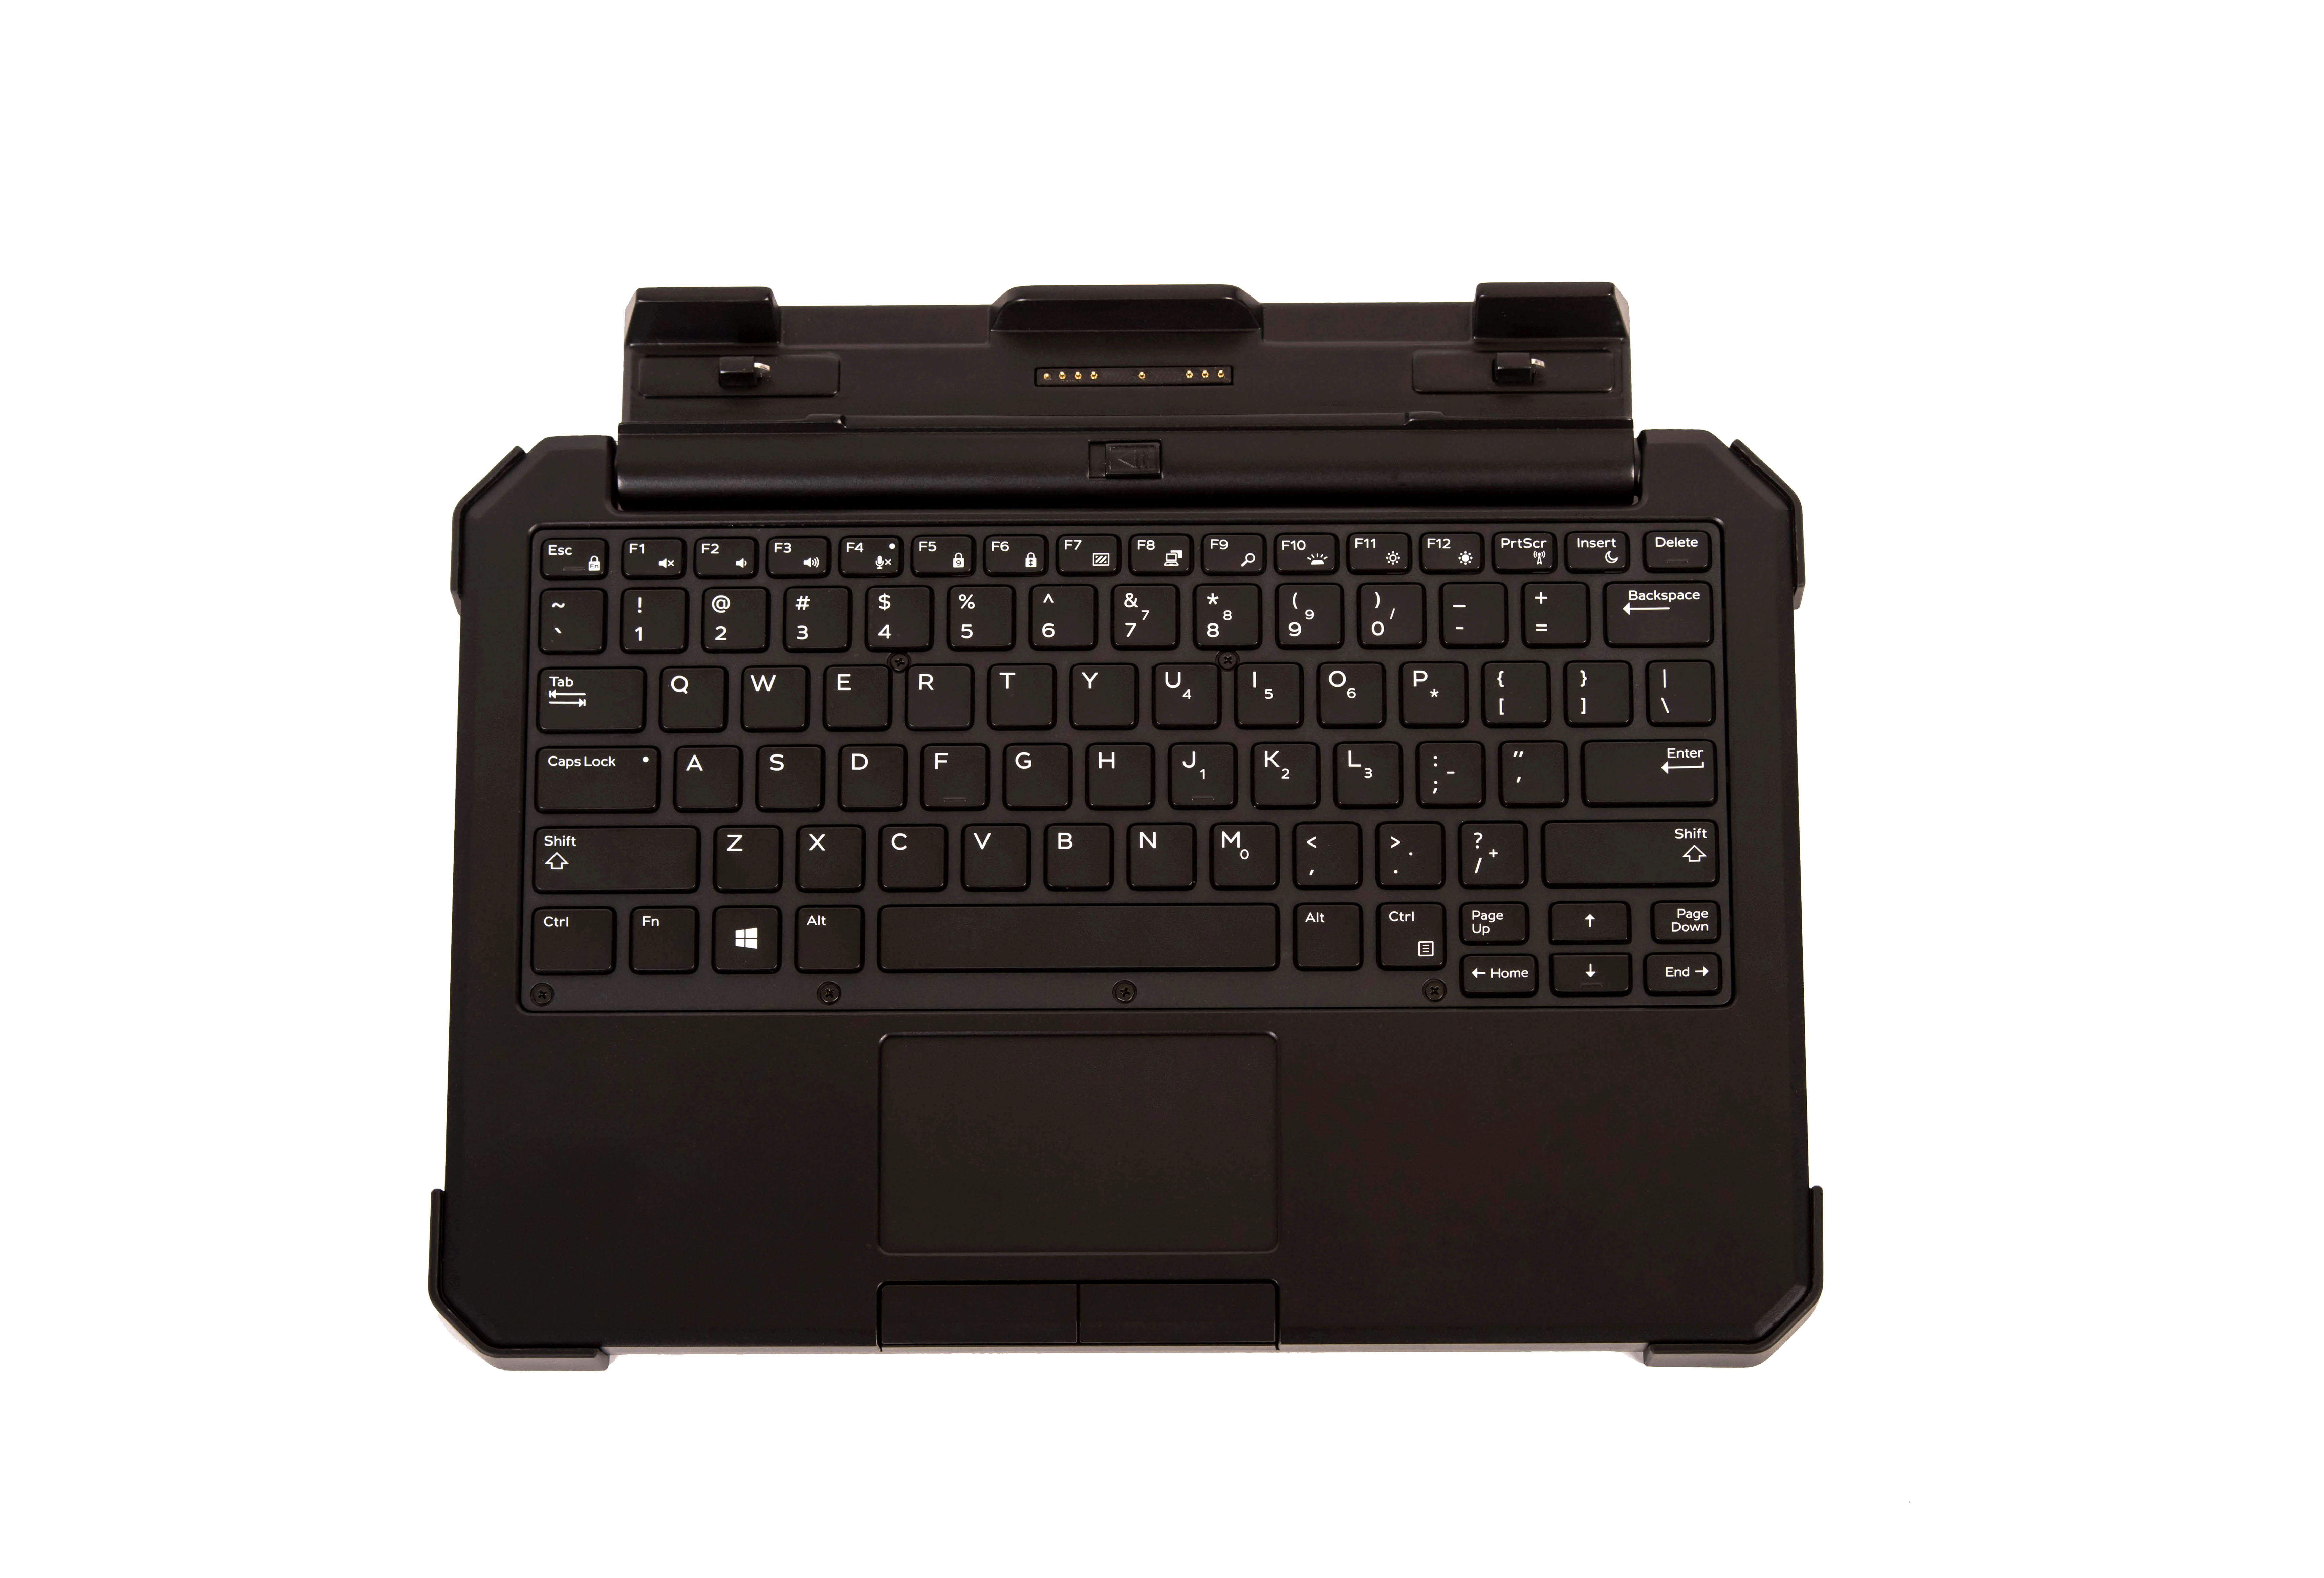 IK-DELL-AT Attachable Keyboard for Dell Latitude 12 - iKey